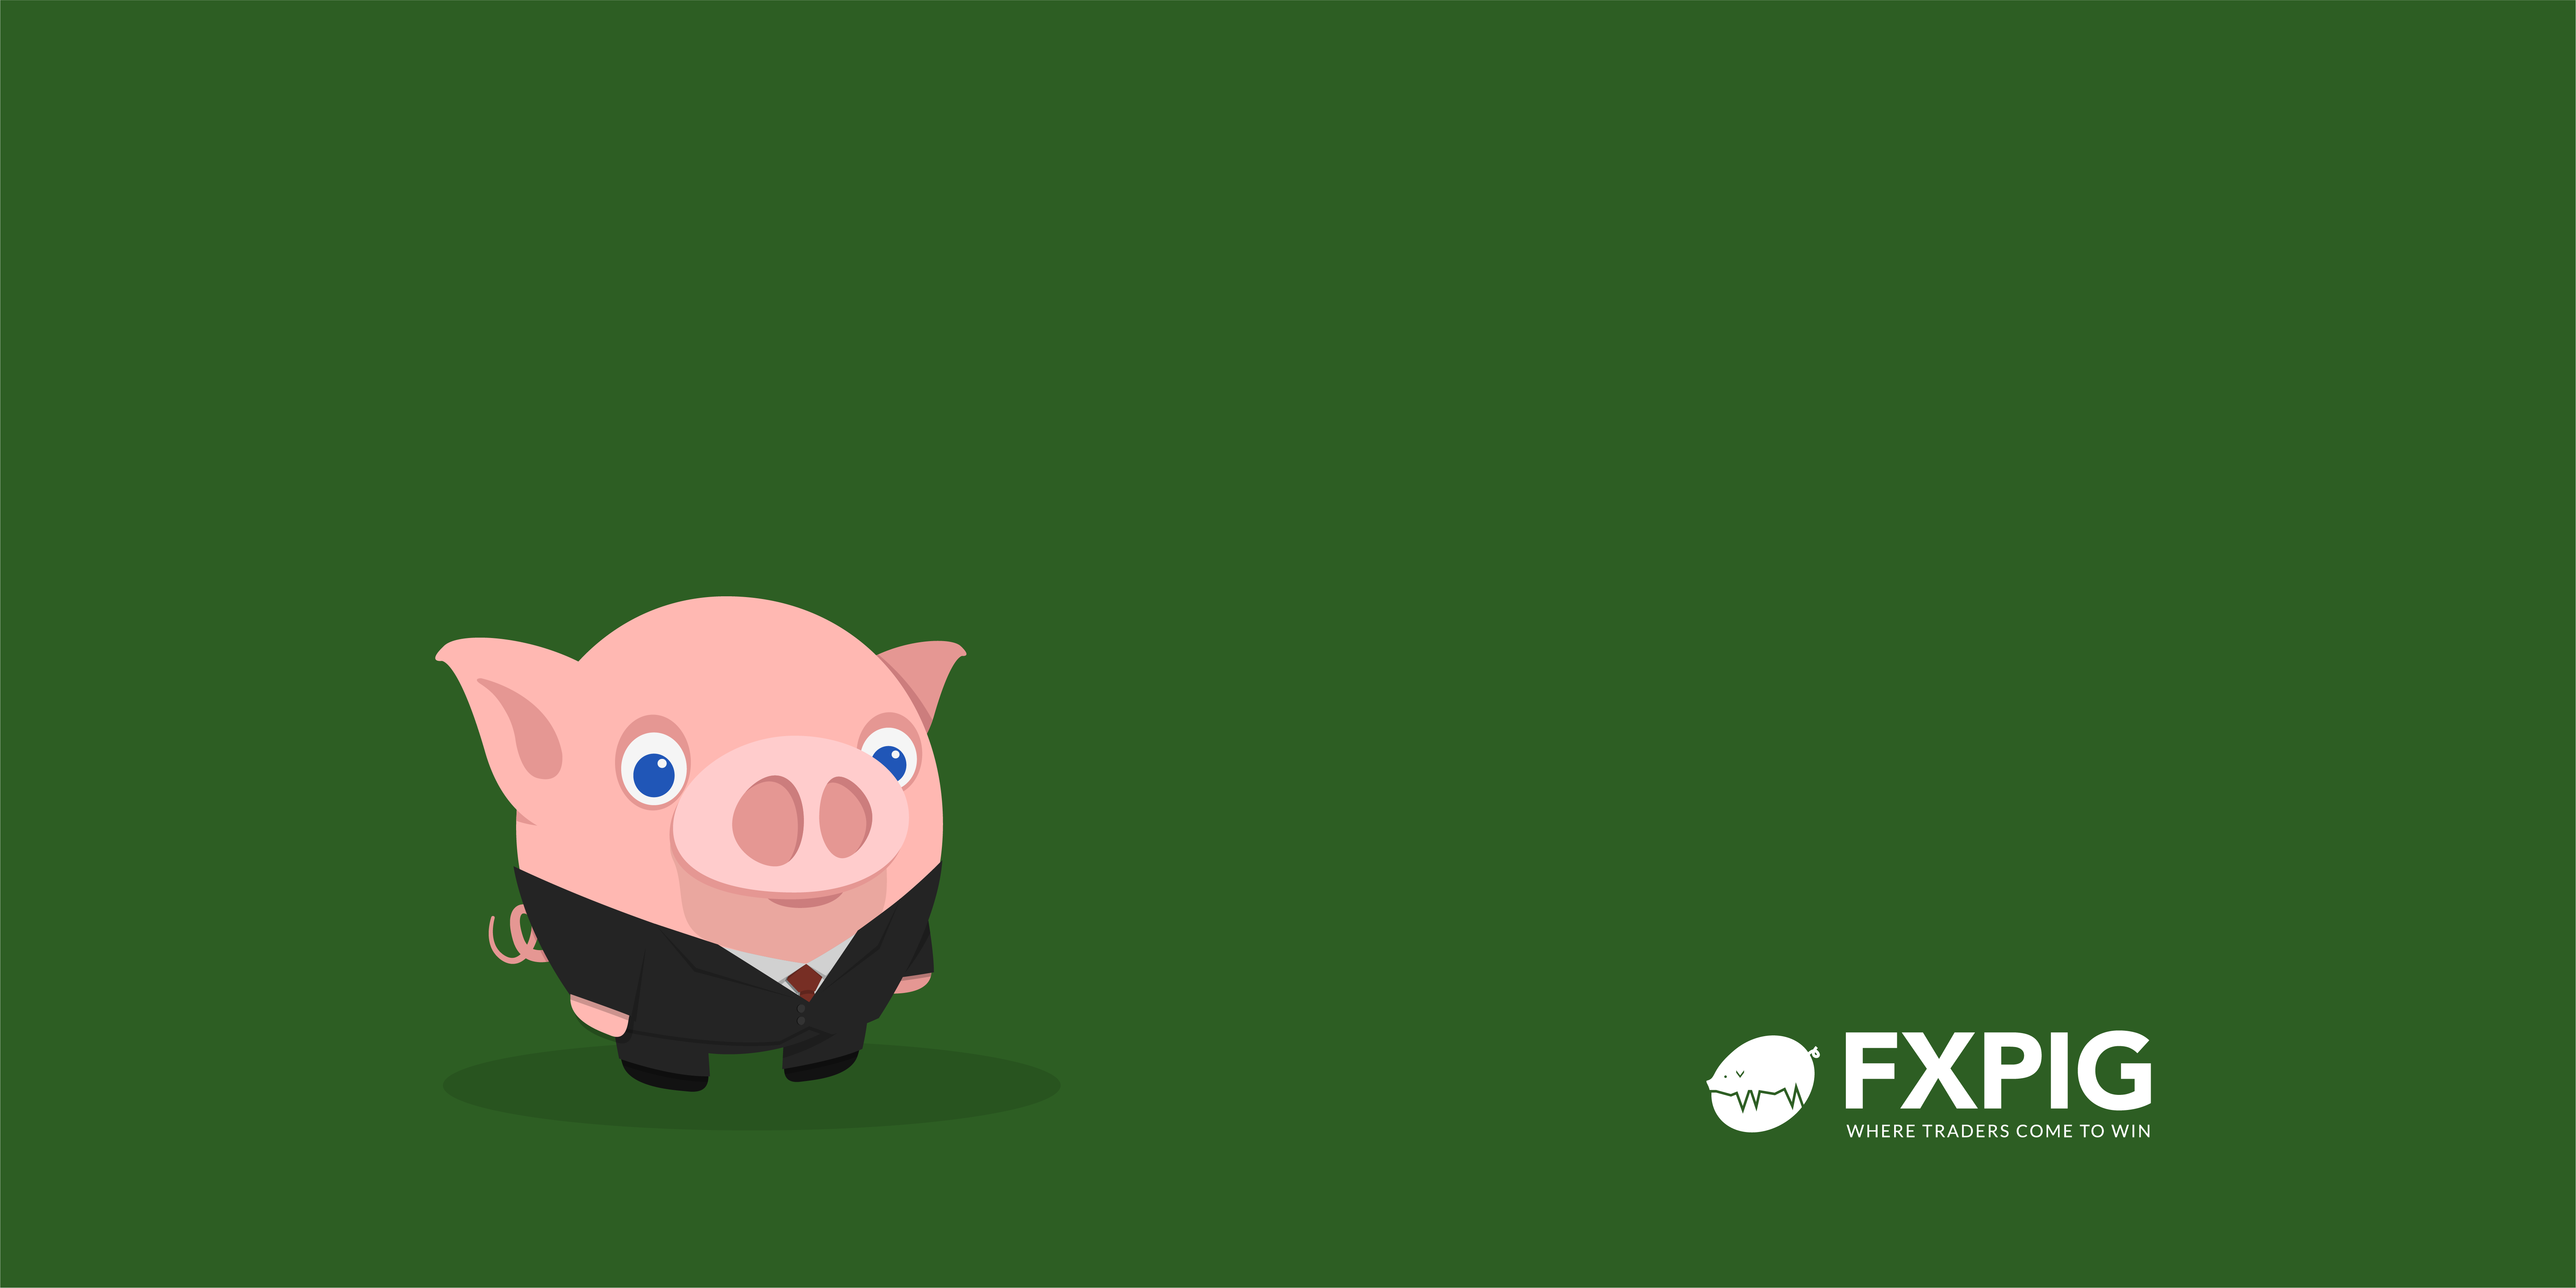 FOREX-Trading-Wisdom_the-market-as-an-opponent_William-Eckhardt_FXPIG